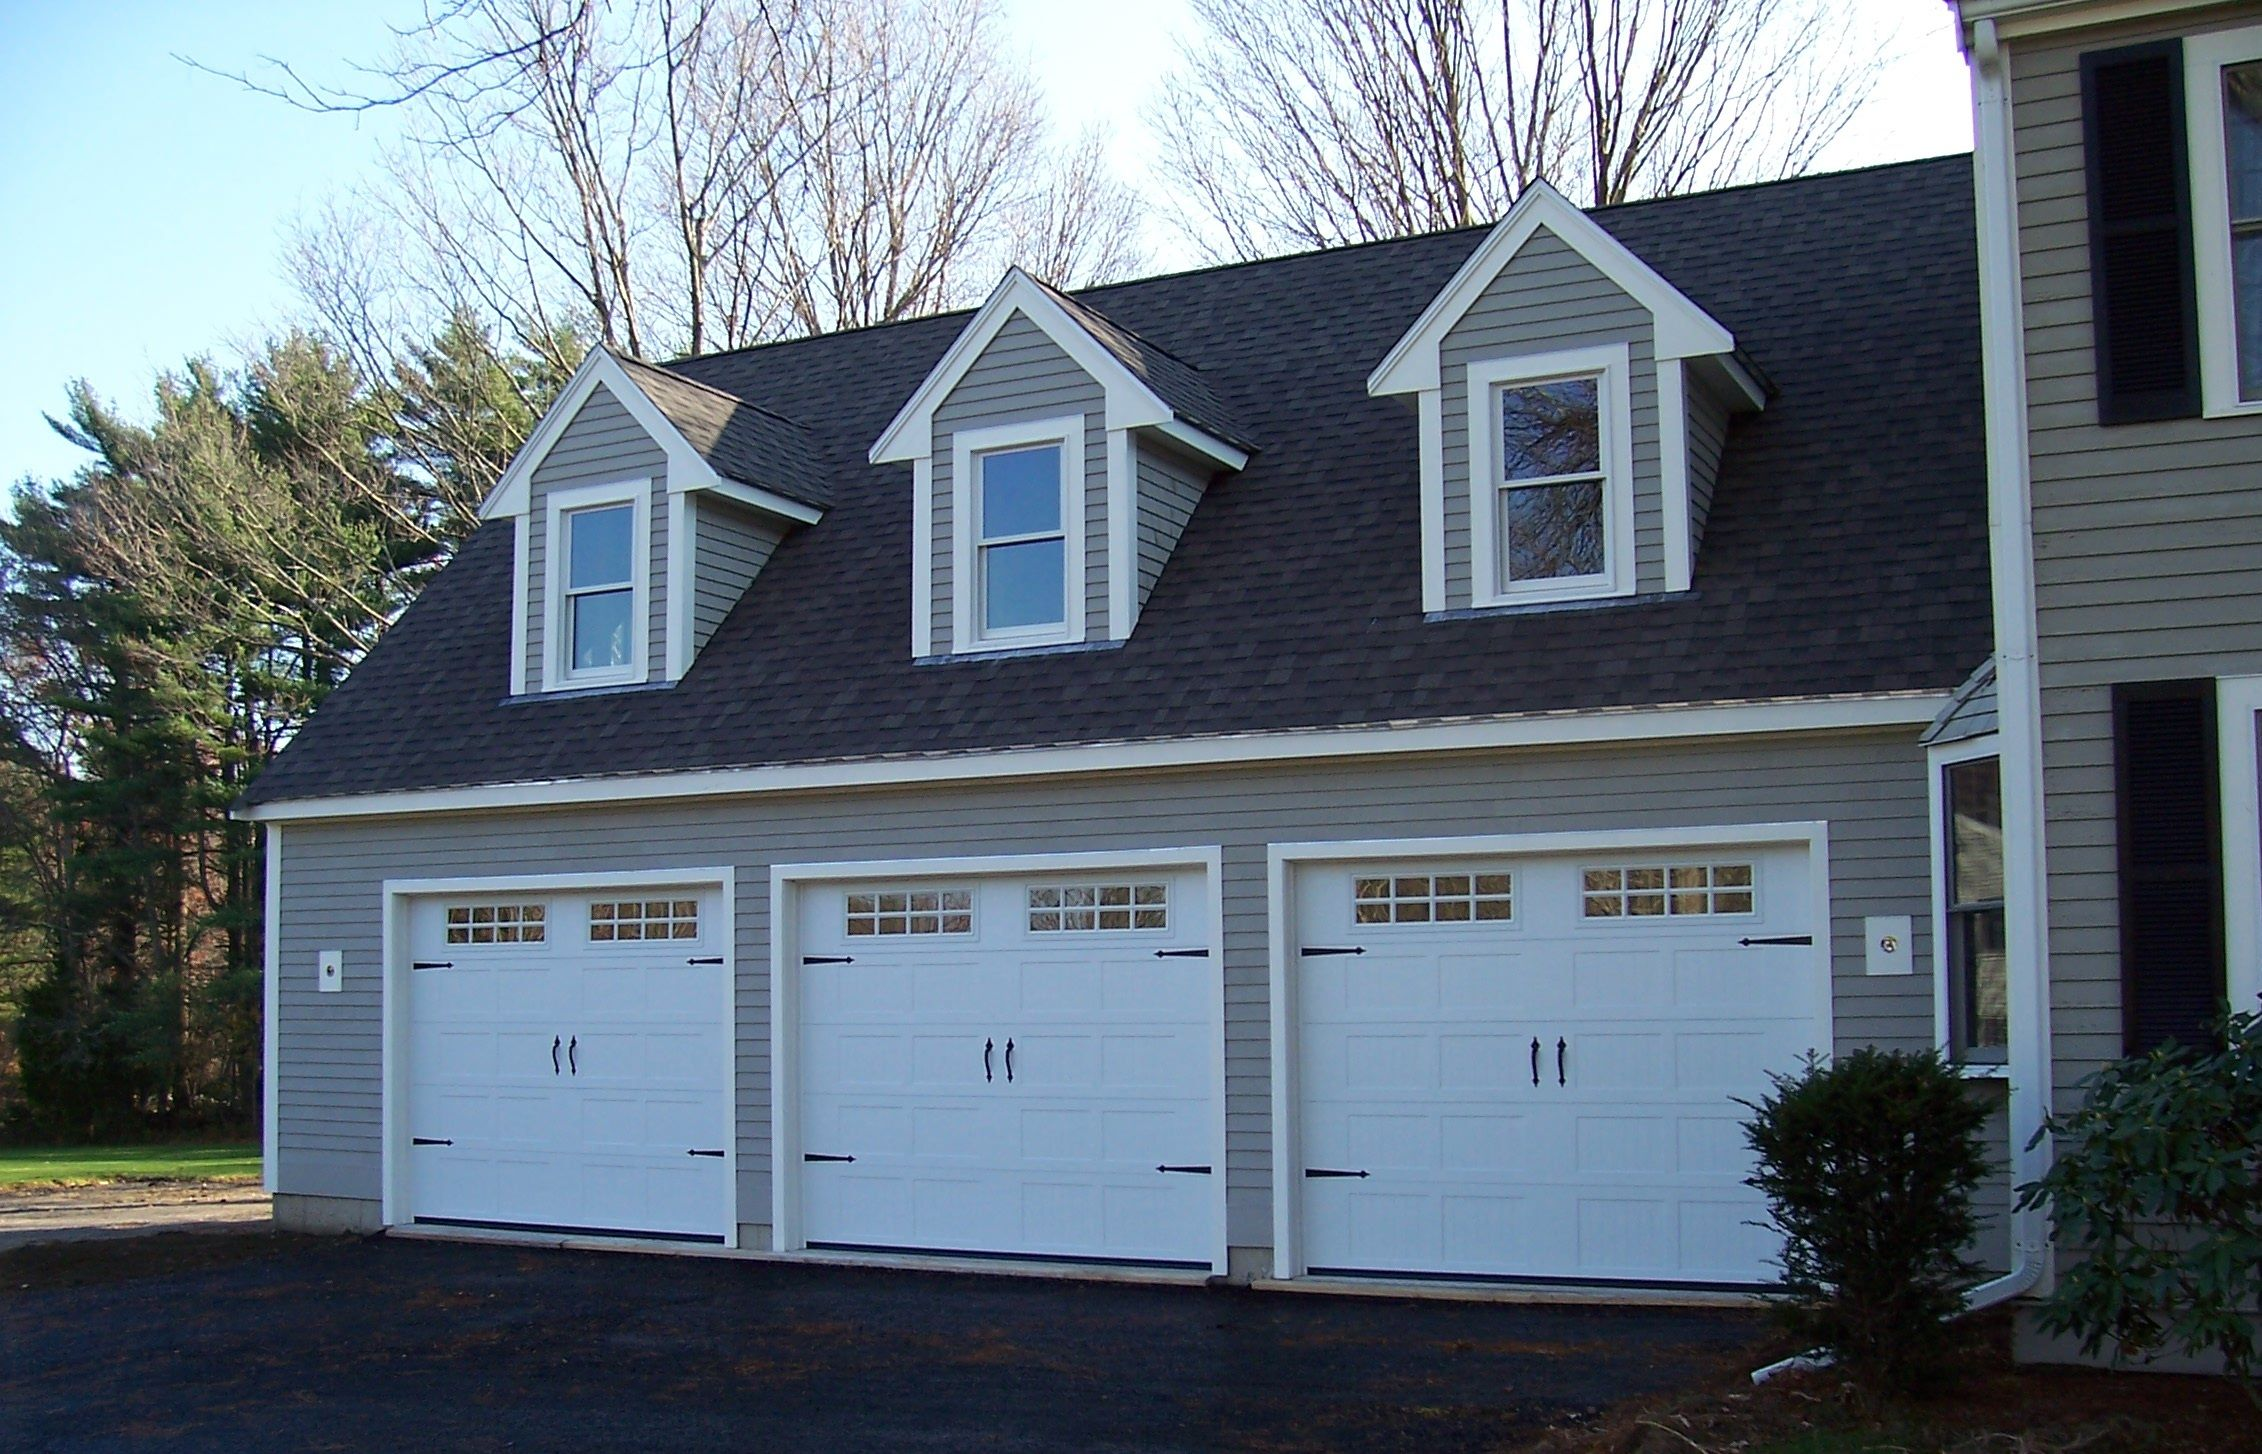 1454 #347B97 Overhead Doors Model 5216 Steel Carriage House Style Garage Doors  pic Black Steel Garage Doors 36512262